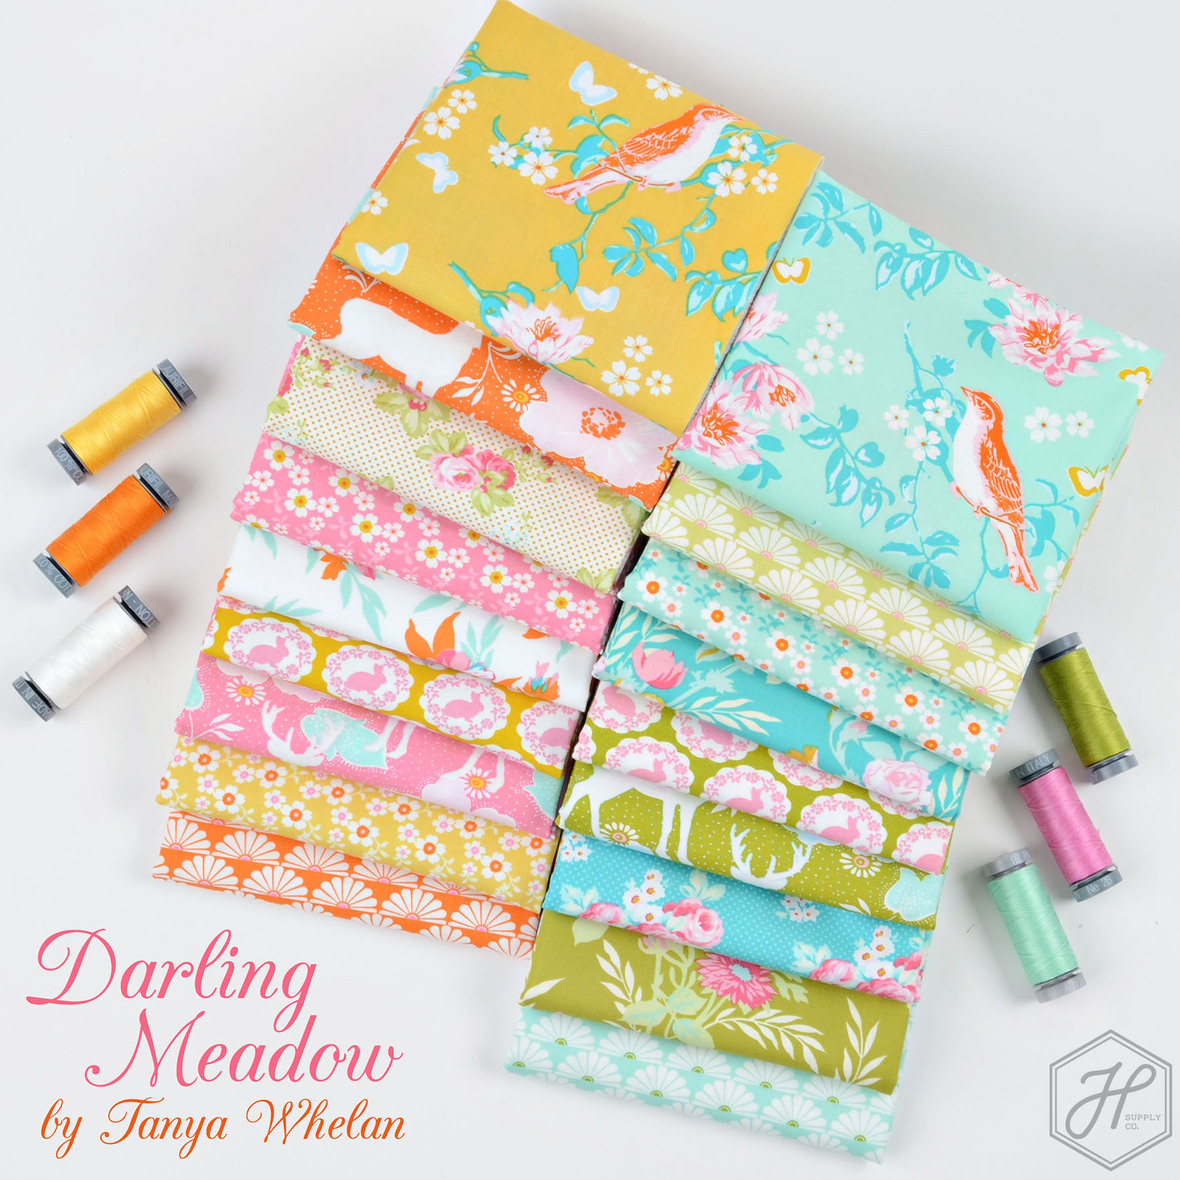 Darling Meadow Fabric Poster